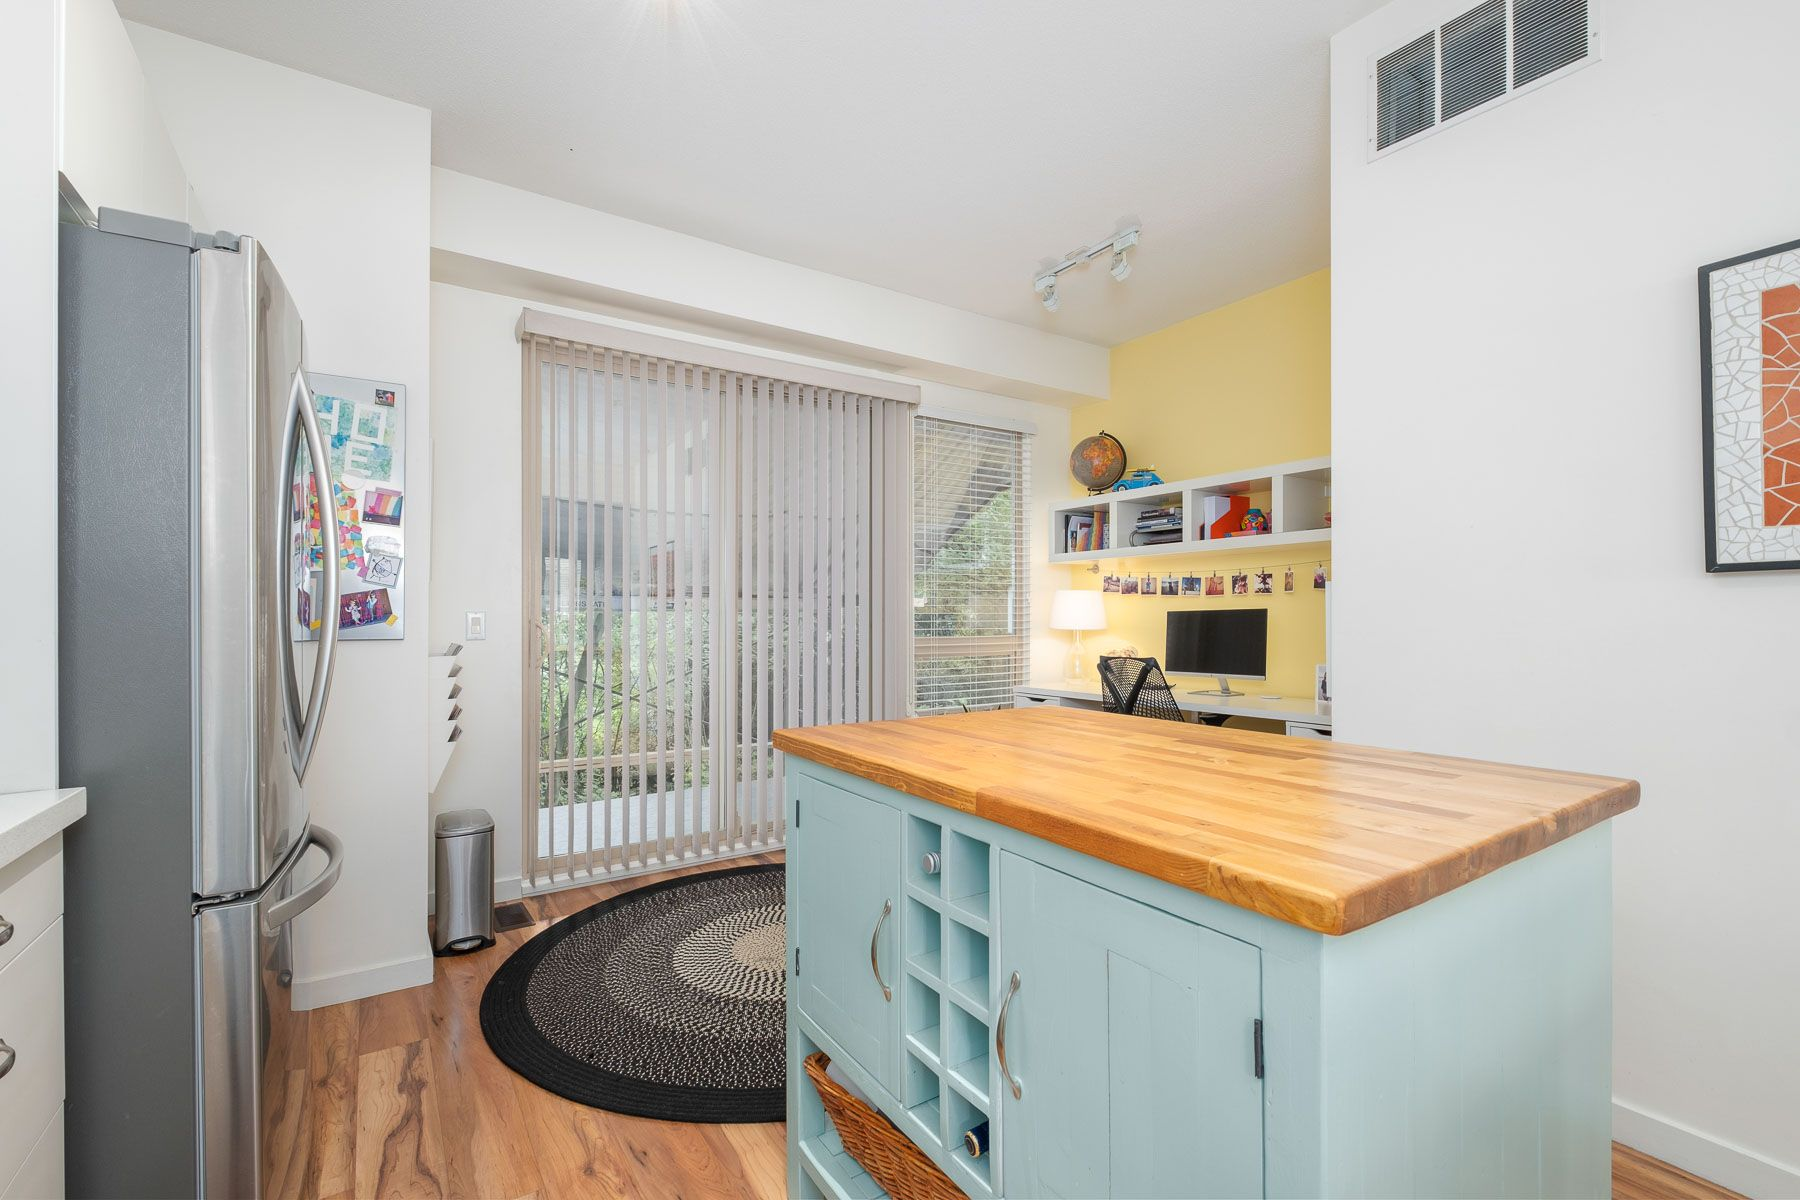 """Photo 11: Photos: 28 9229 UNIVERSITY Crescent in Burnaby: Simon Fraser Univer. Townhouse for sale in """"SERENITY"""" (Burnaby North)  : MLS®# R2589602"""